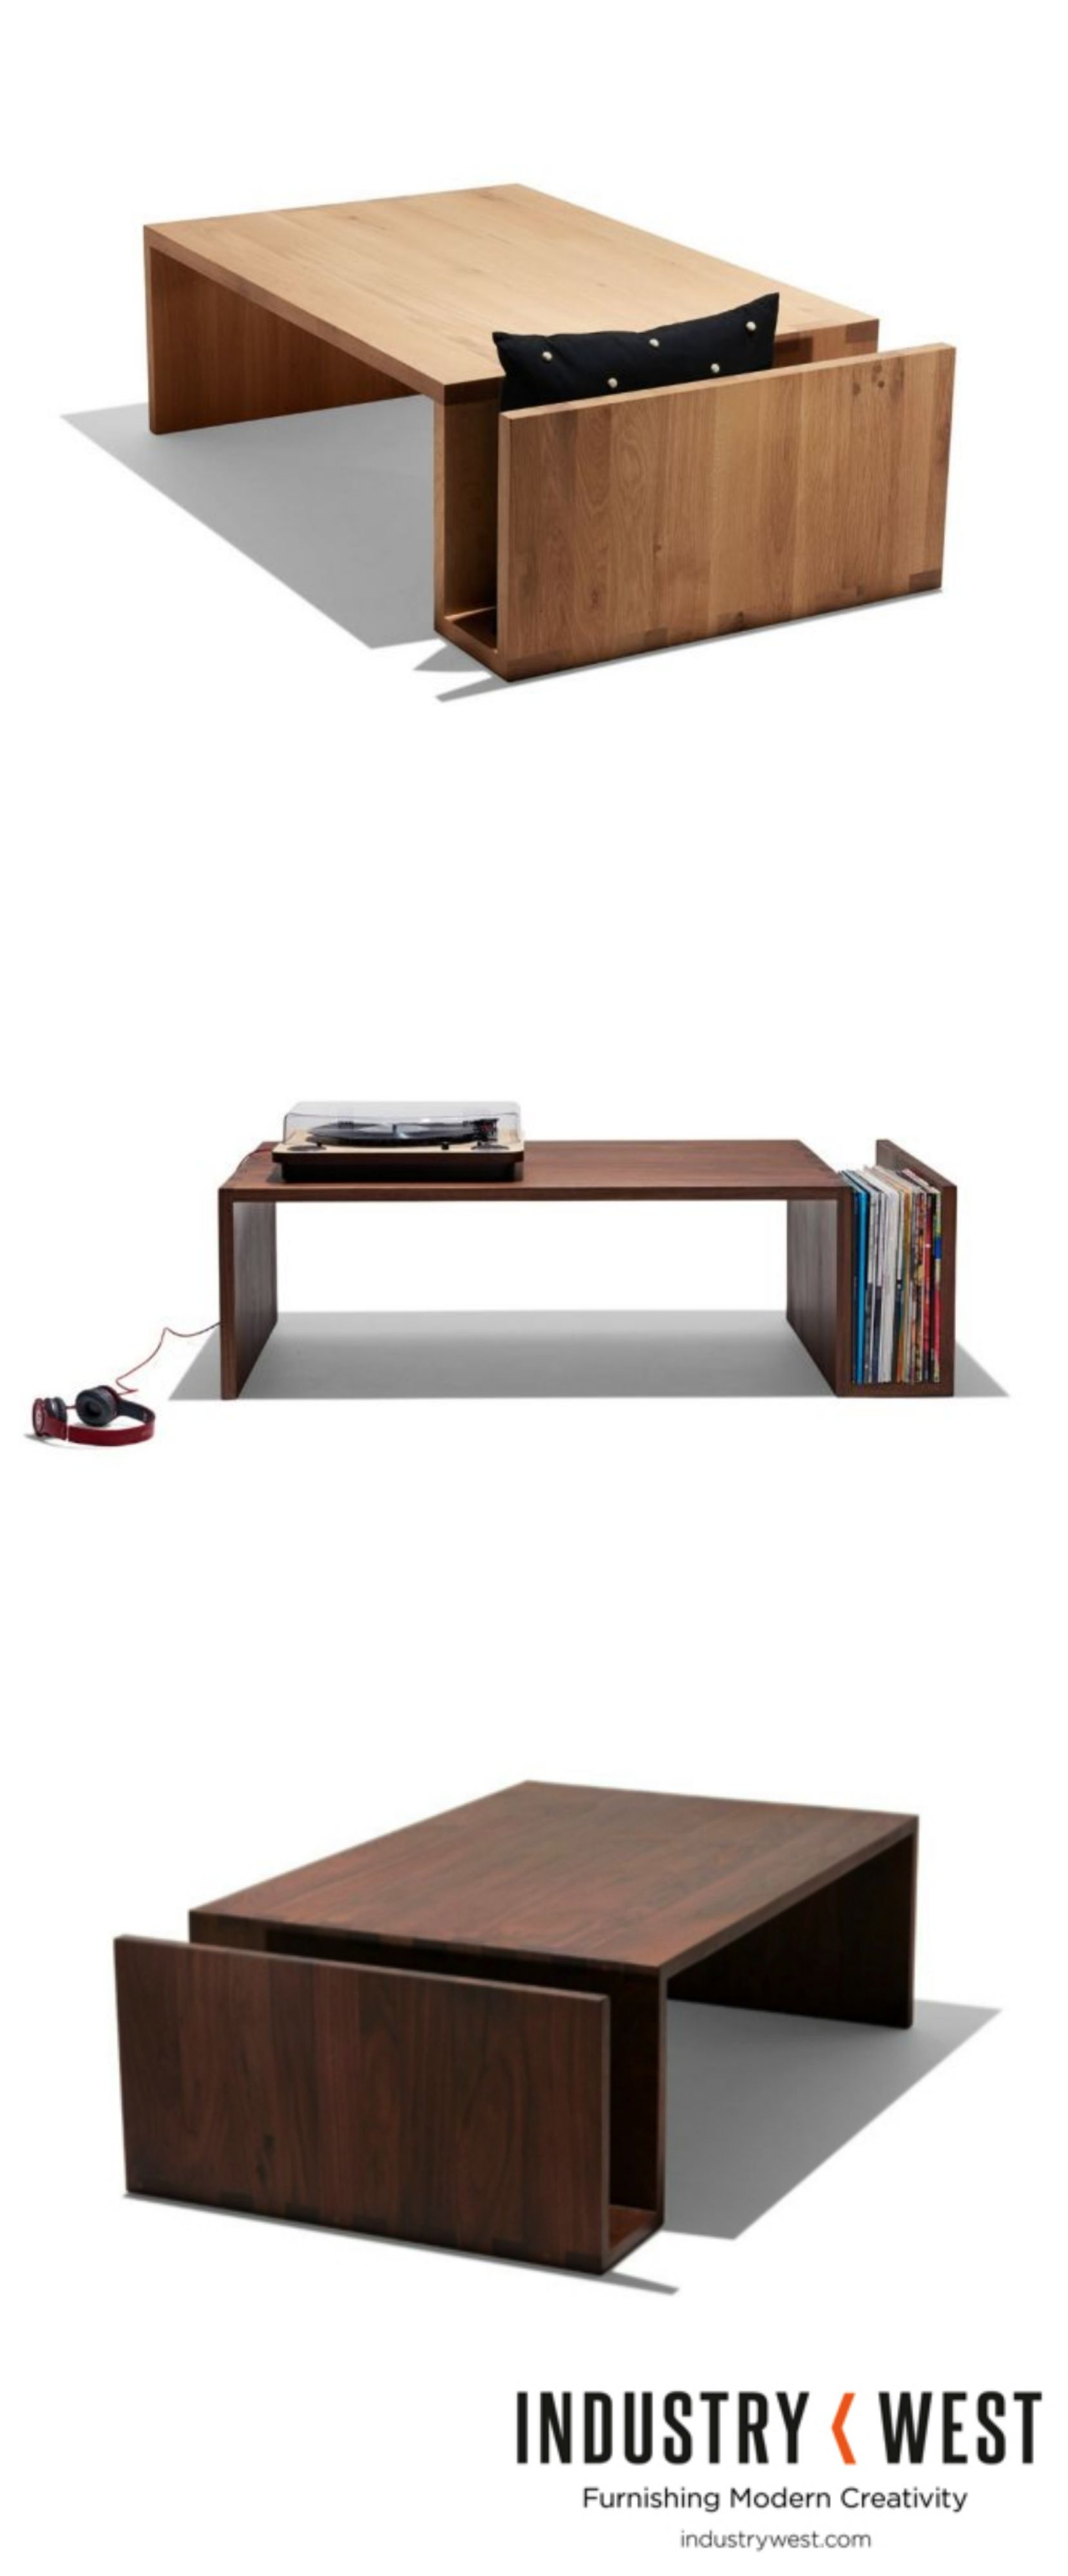 Belgian Design Powerhouse Ethnicraft Creates And Manufactures A Collection  Of Modern, Solid Wood Furniture With